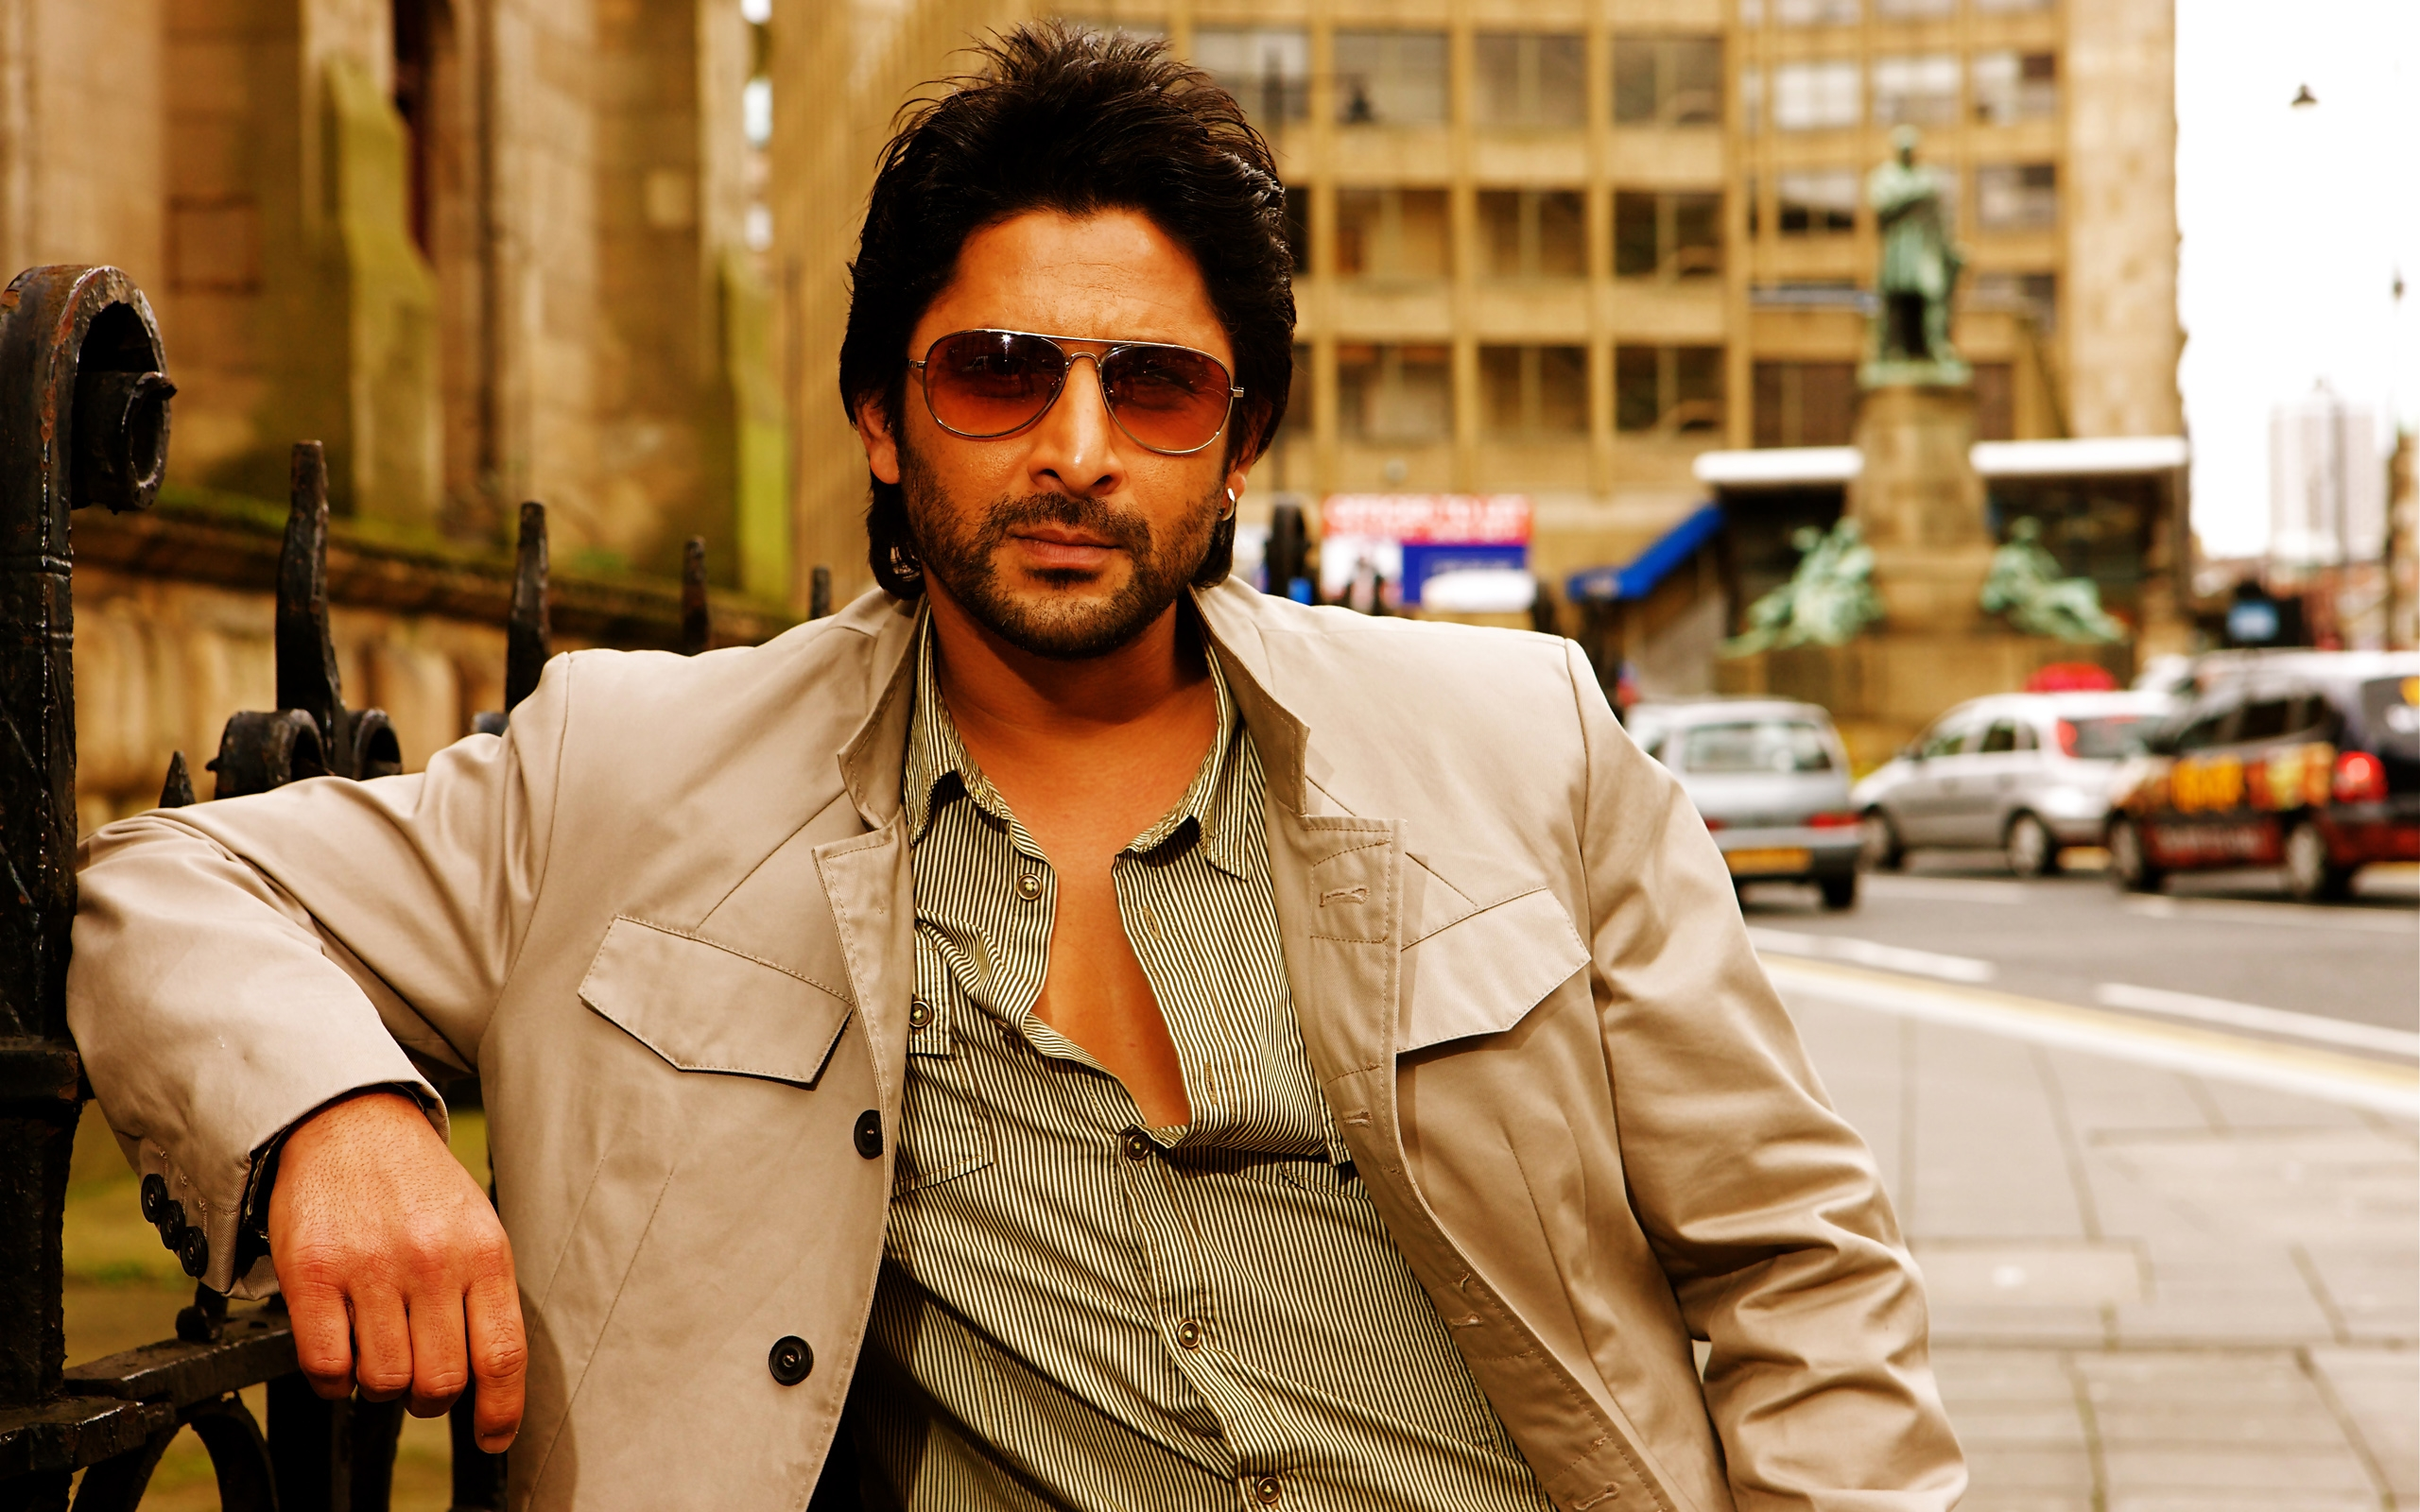 arshad warsi full hd wallpaper and background image | 2560x1600 | id